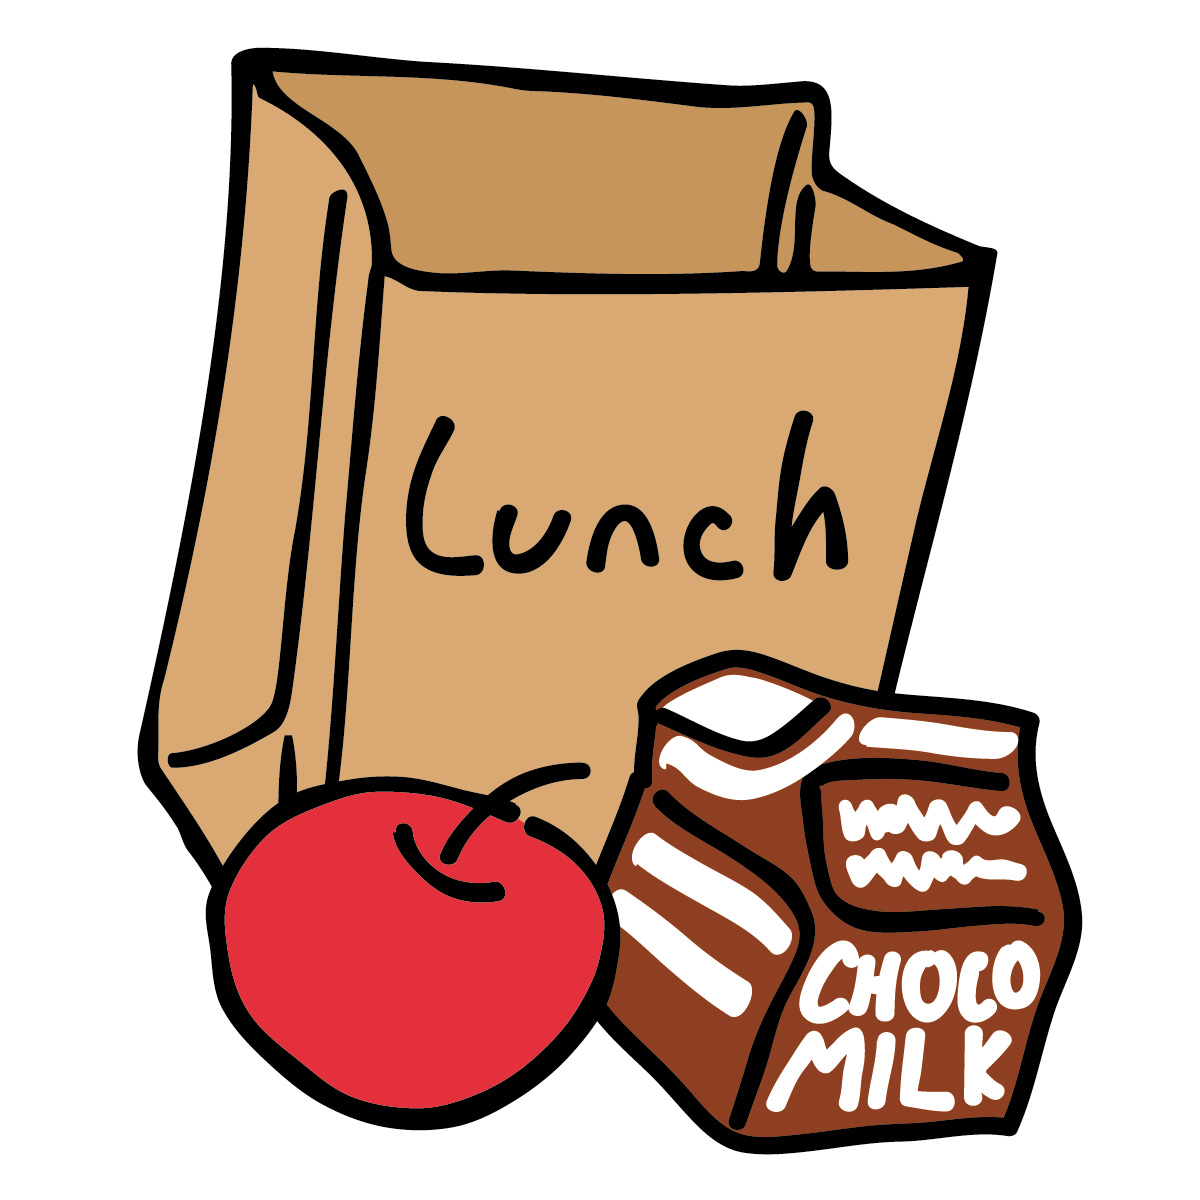 Time for lunch clipart clip art black and white download Lunch Time Clip Art   Clipart Panda - Free Clipart Images clip art black and white download